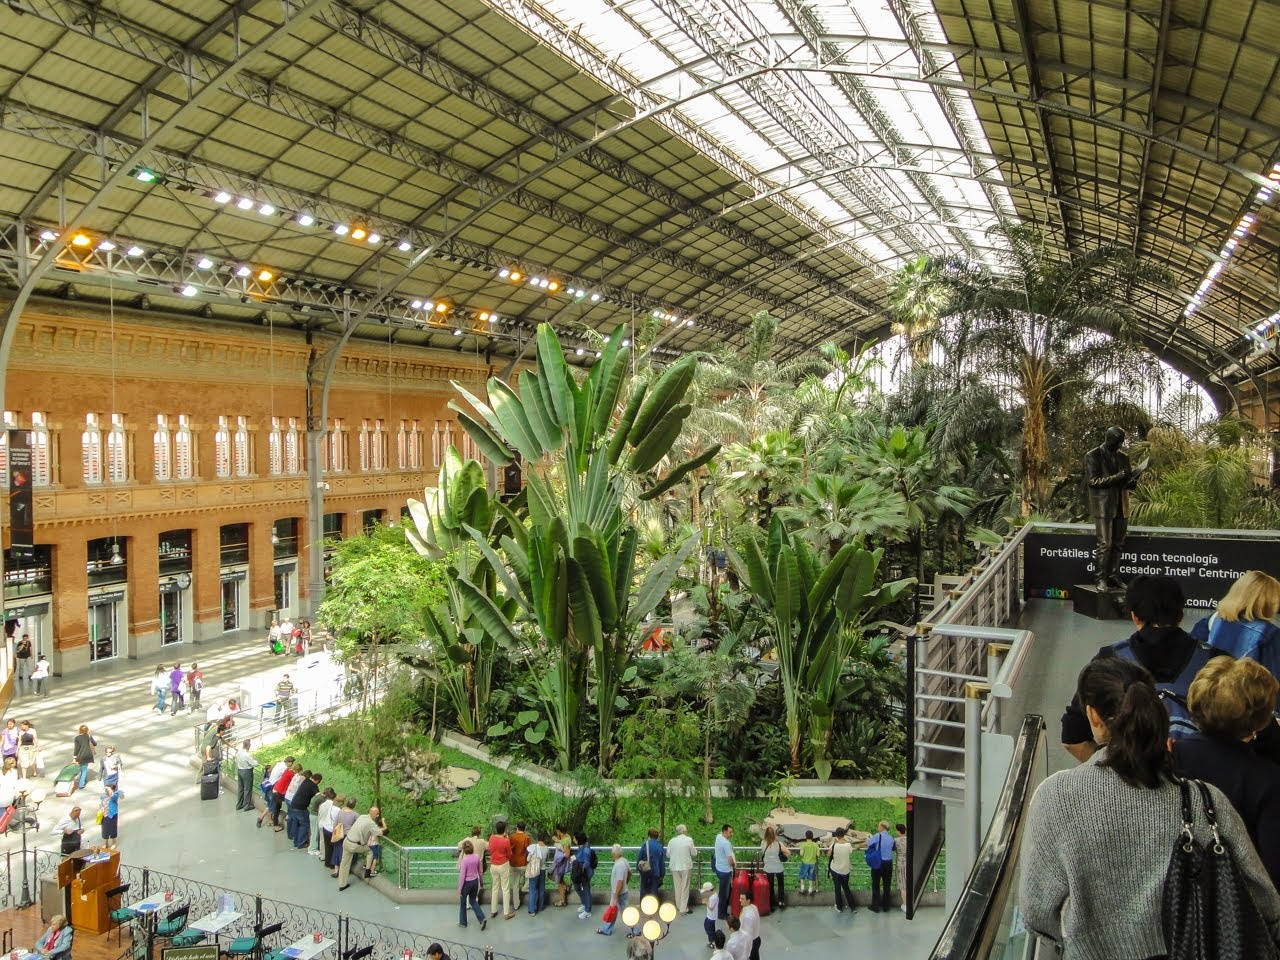 A tropical garden inside of the station